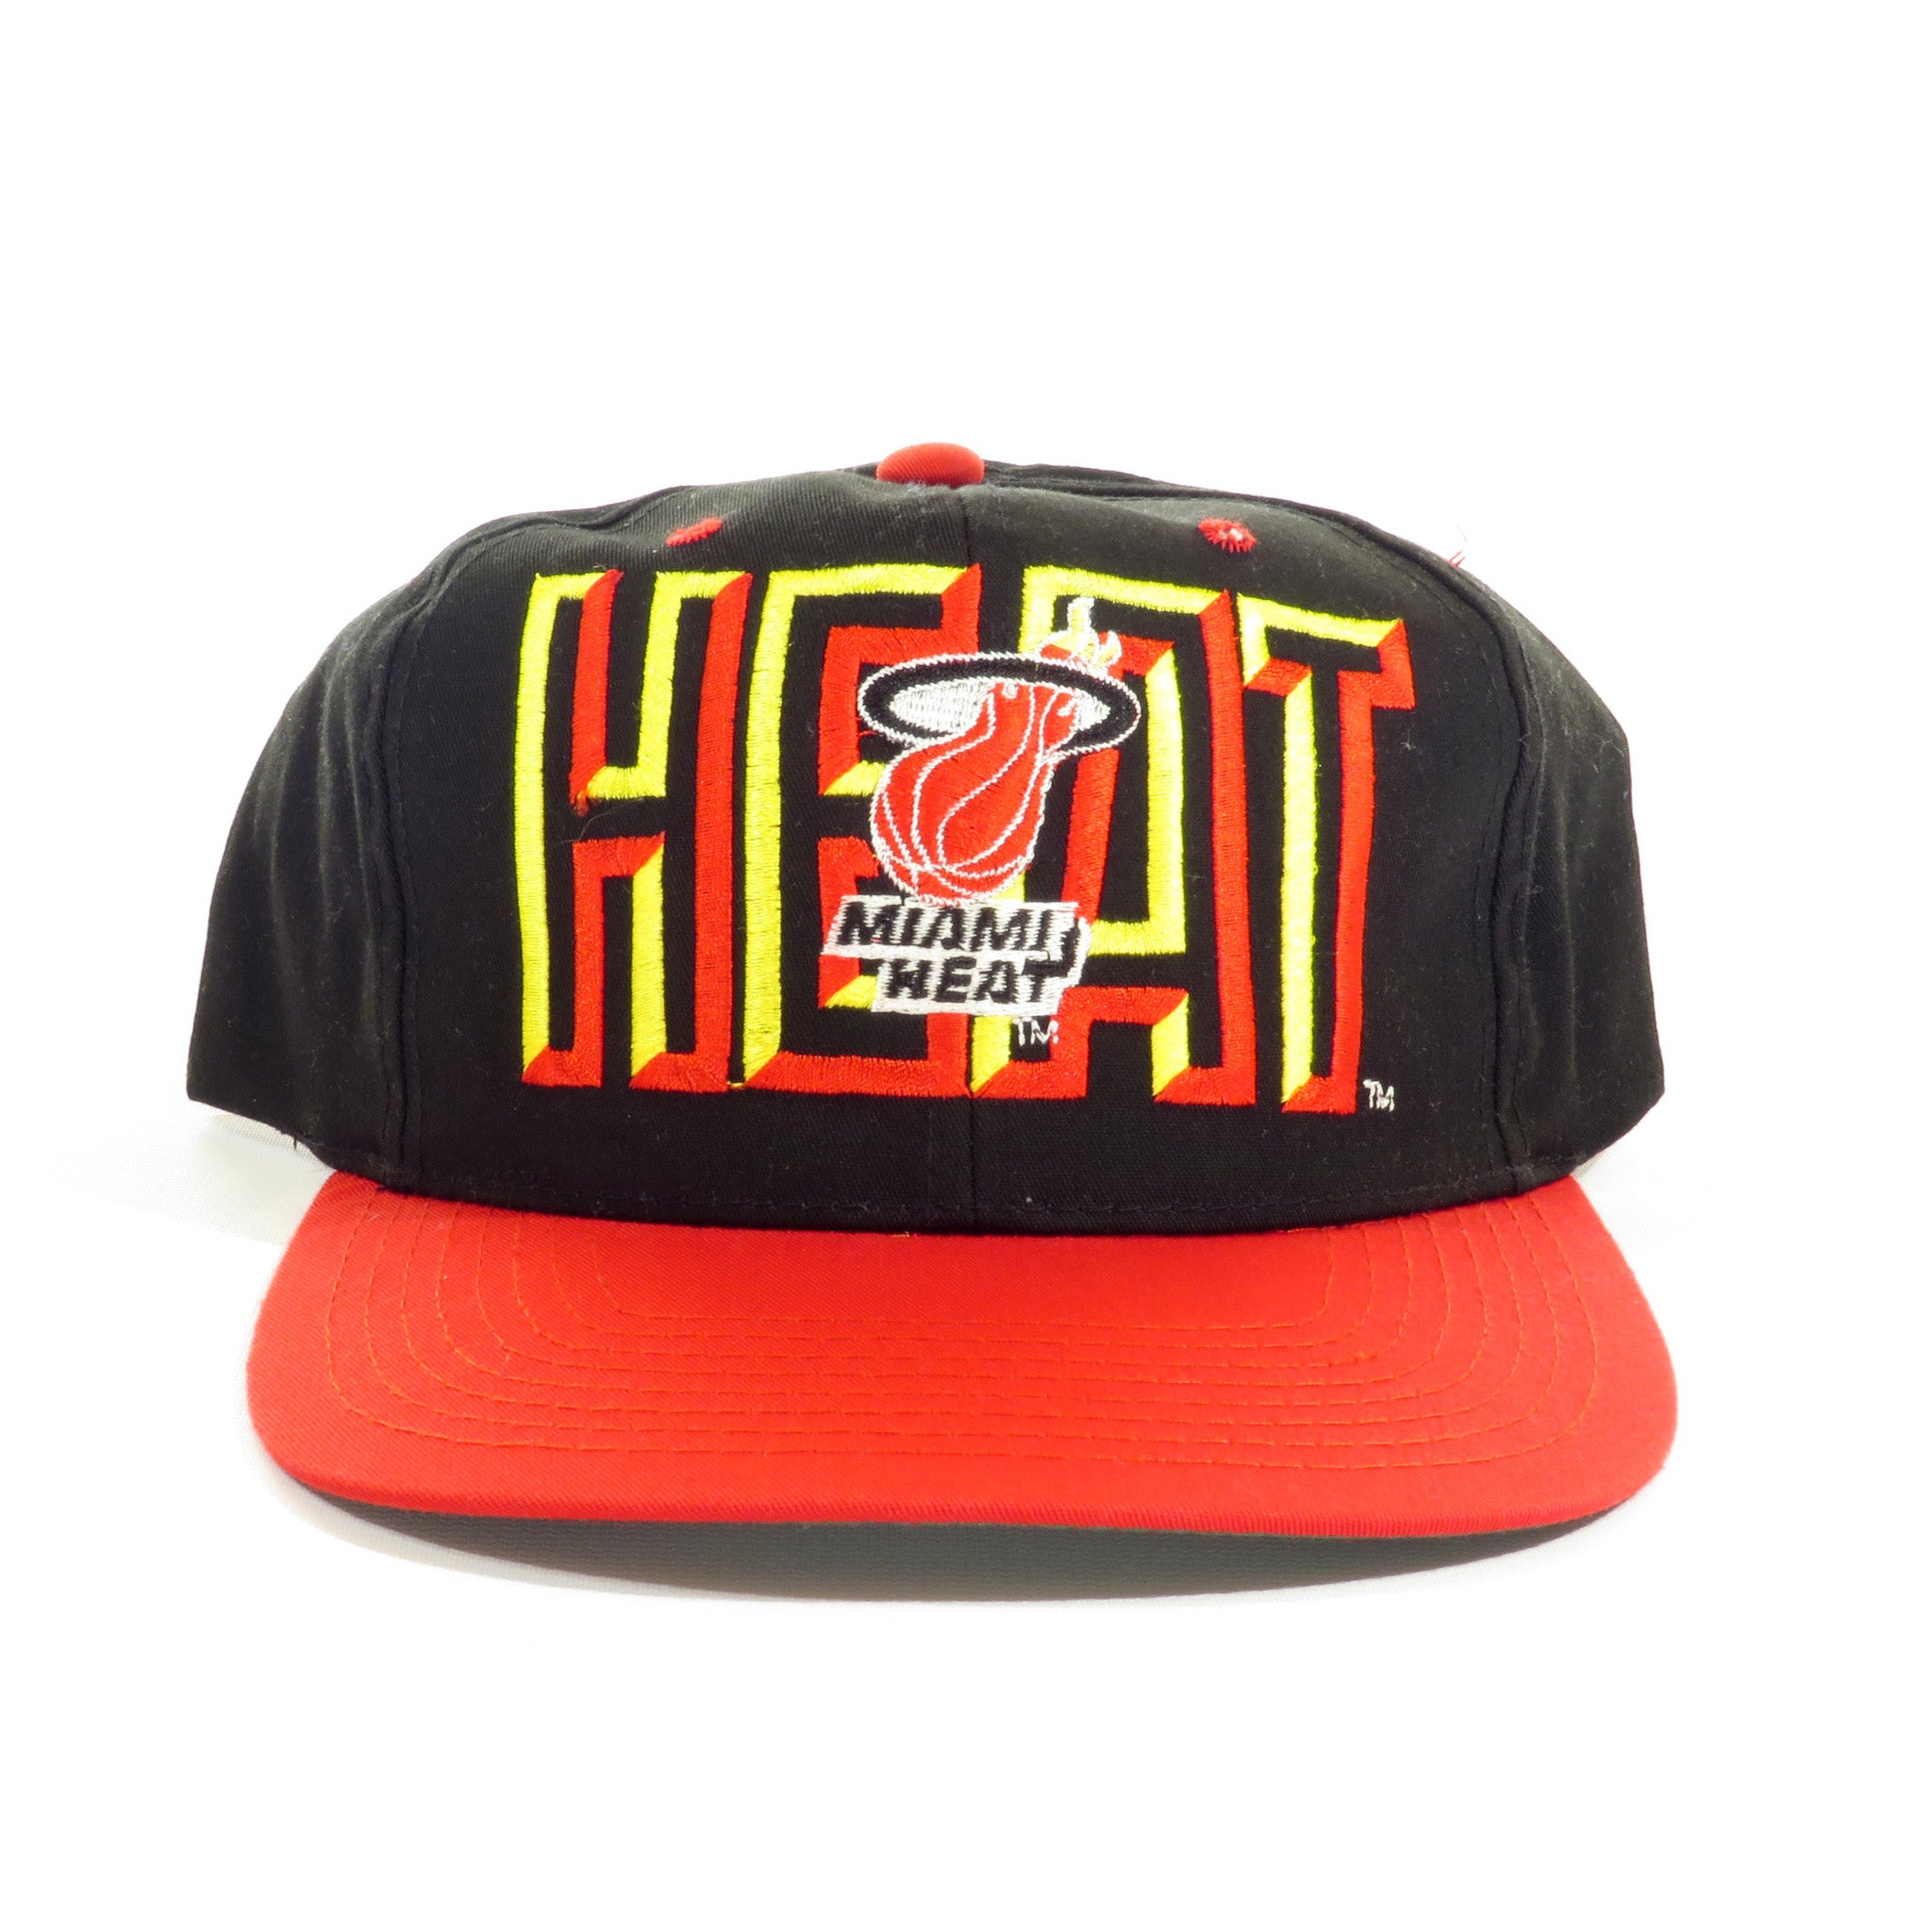 Miami Heat Snapback Hat